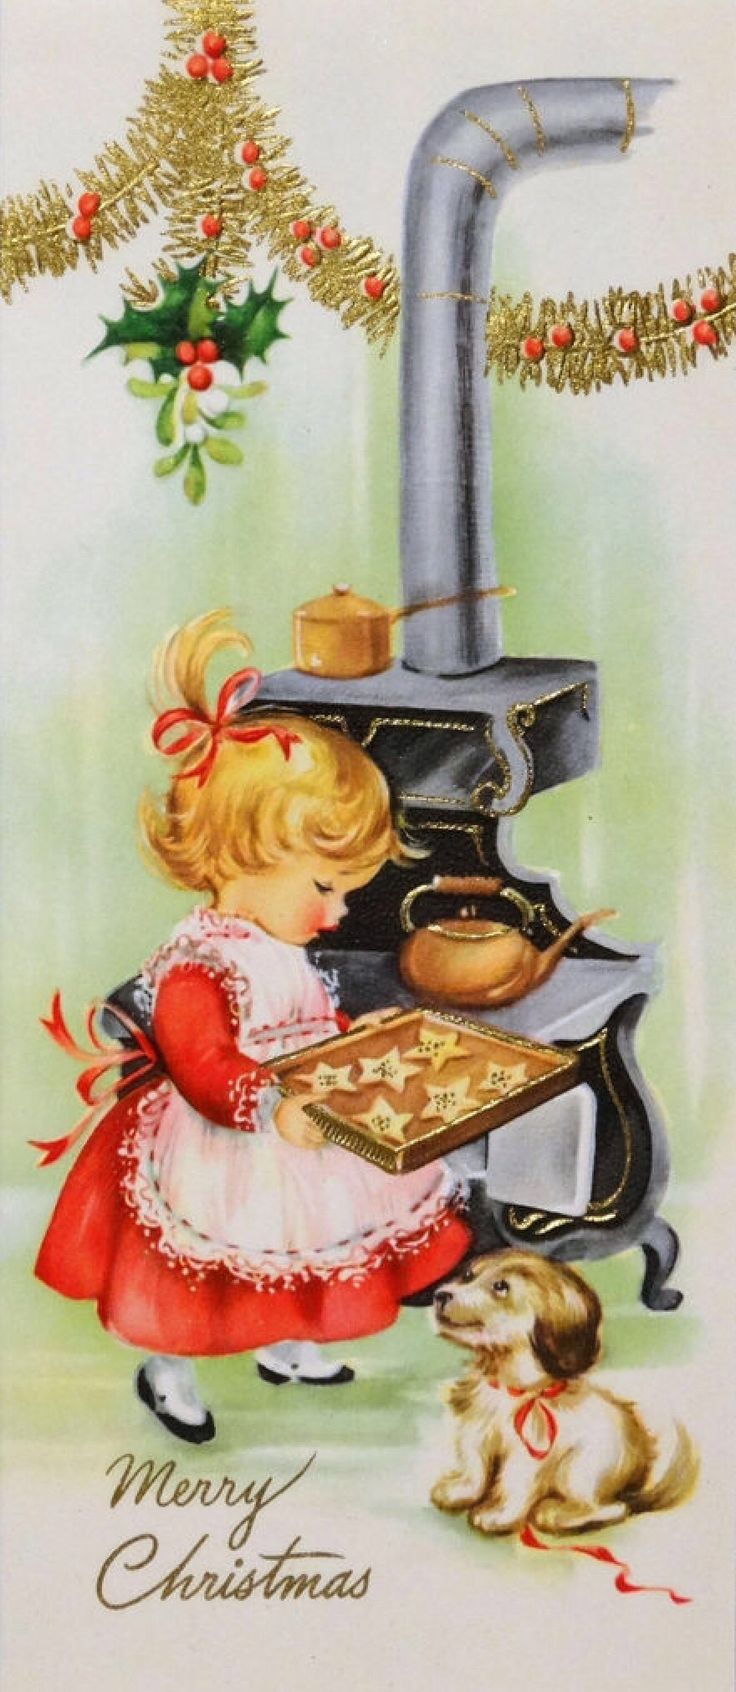 Pinterest Christmas Vintage Best 25+ Vintage Christmas Images Ideas On Pinterest